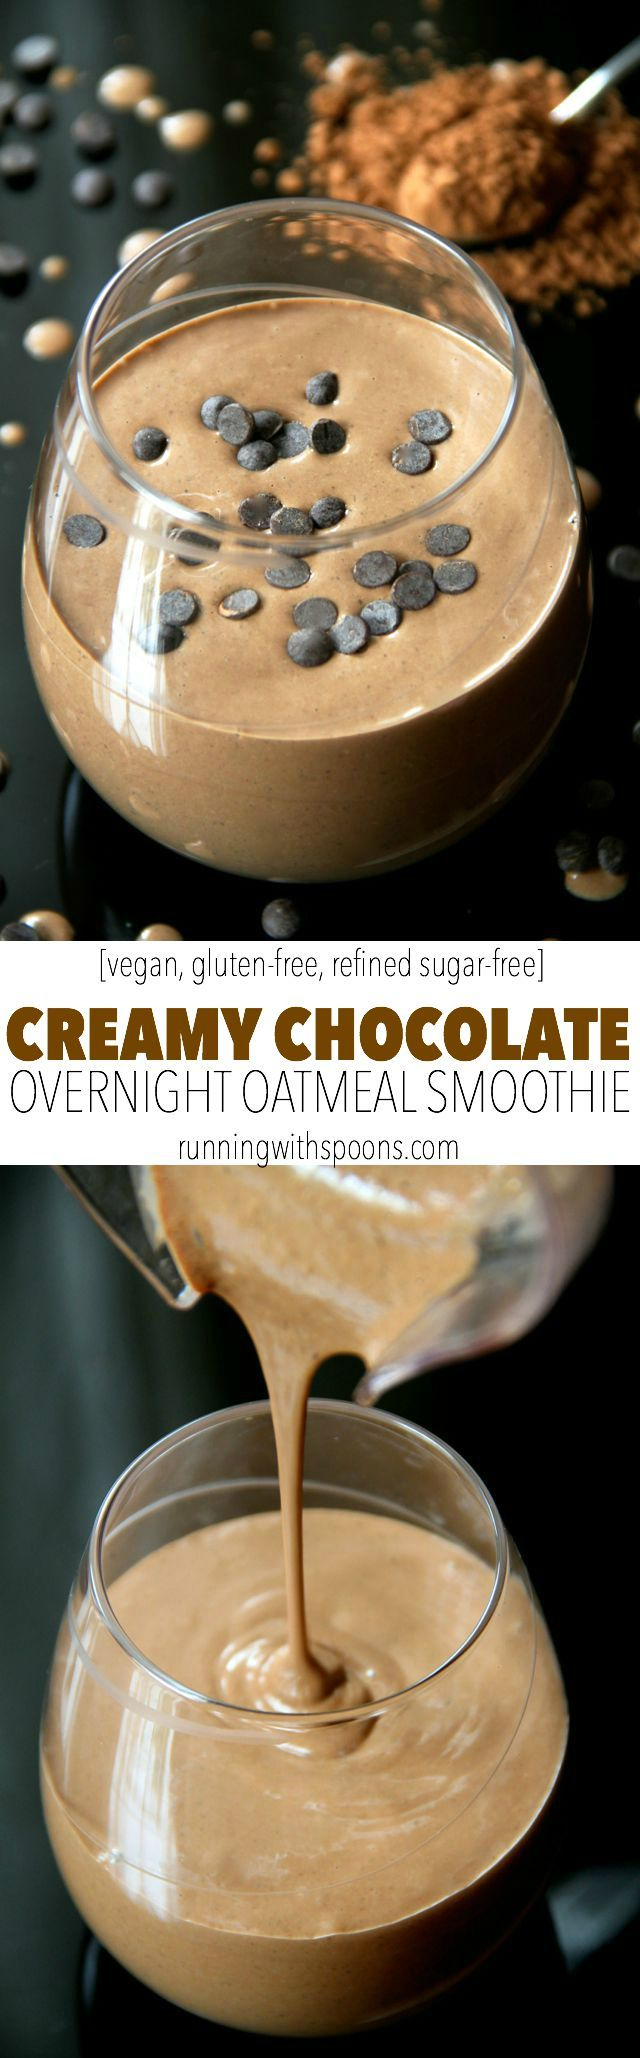 canada jacket Chocolate Overnight Oatmeal Smoothie    smooth  creamy  and sure to keep you satisfied for hours  This vegan smoothie will knock out those chocolate cravings while providing you with a balanced breakfast or snack    runningwithspoons com  vegan  healthy